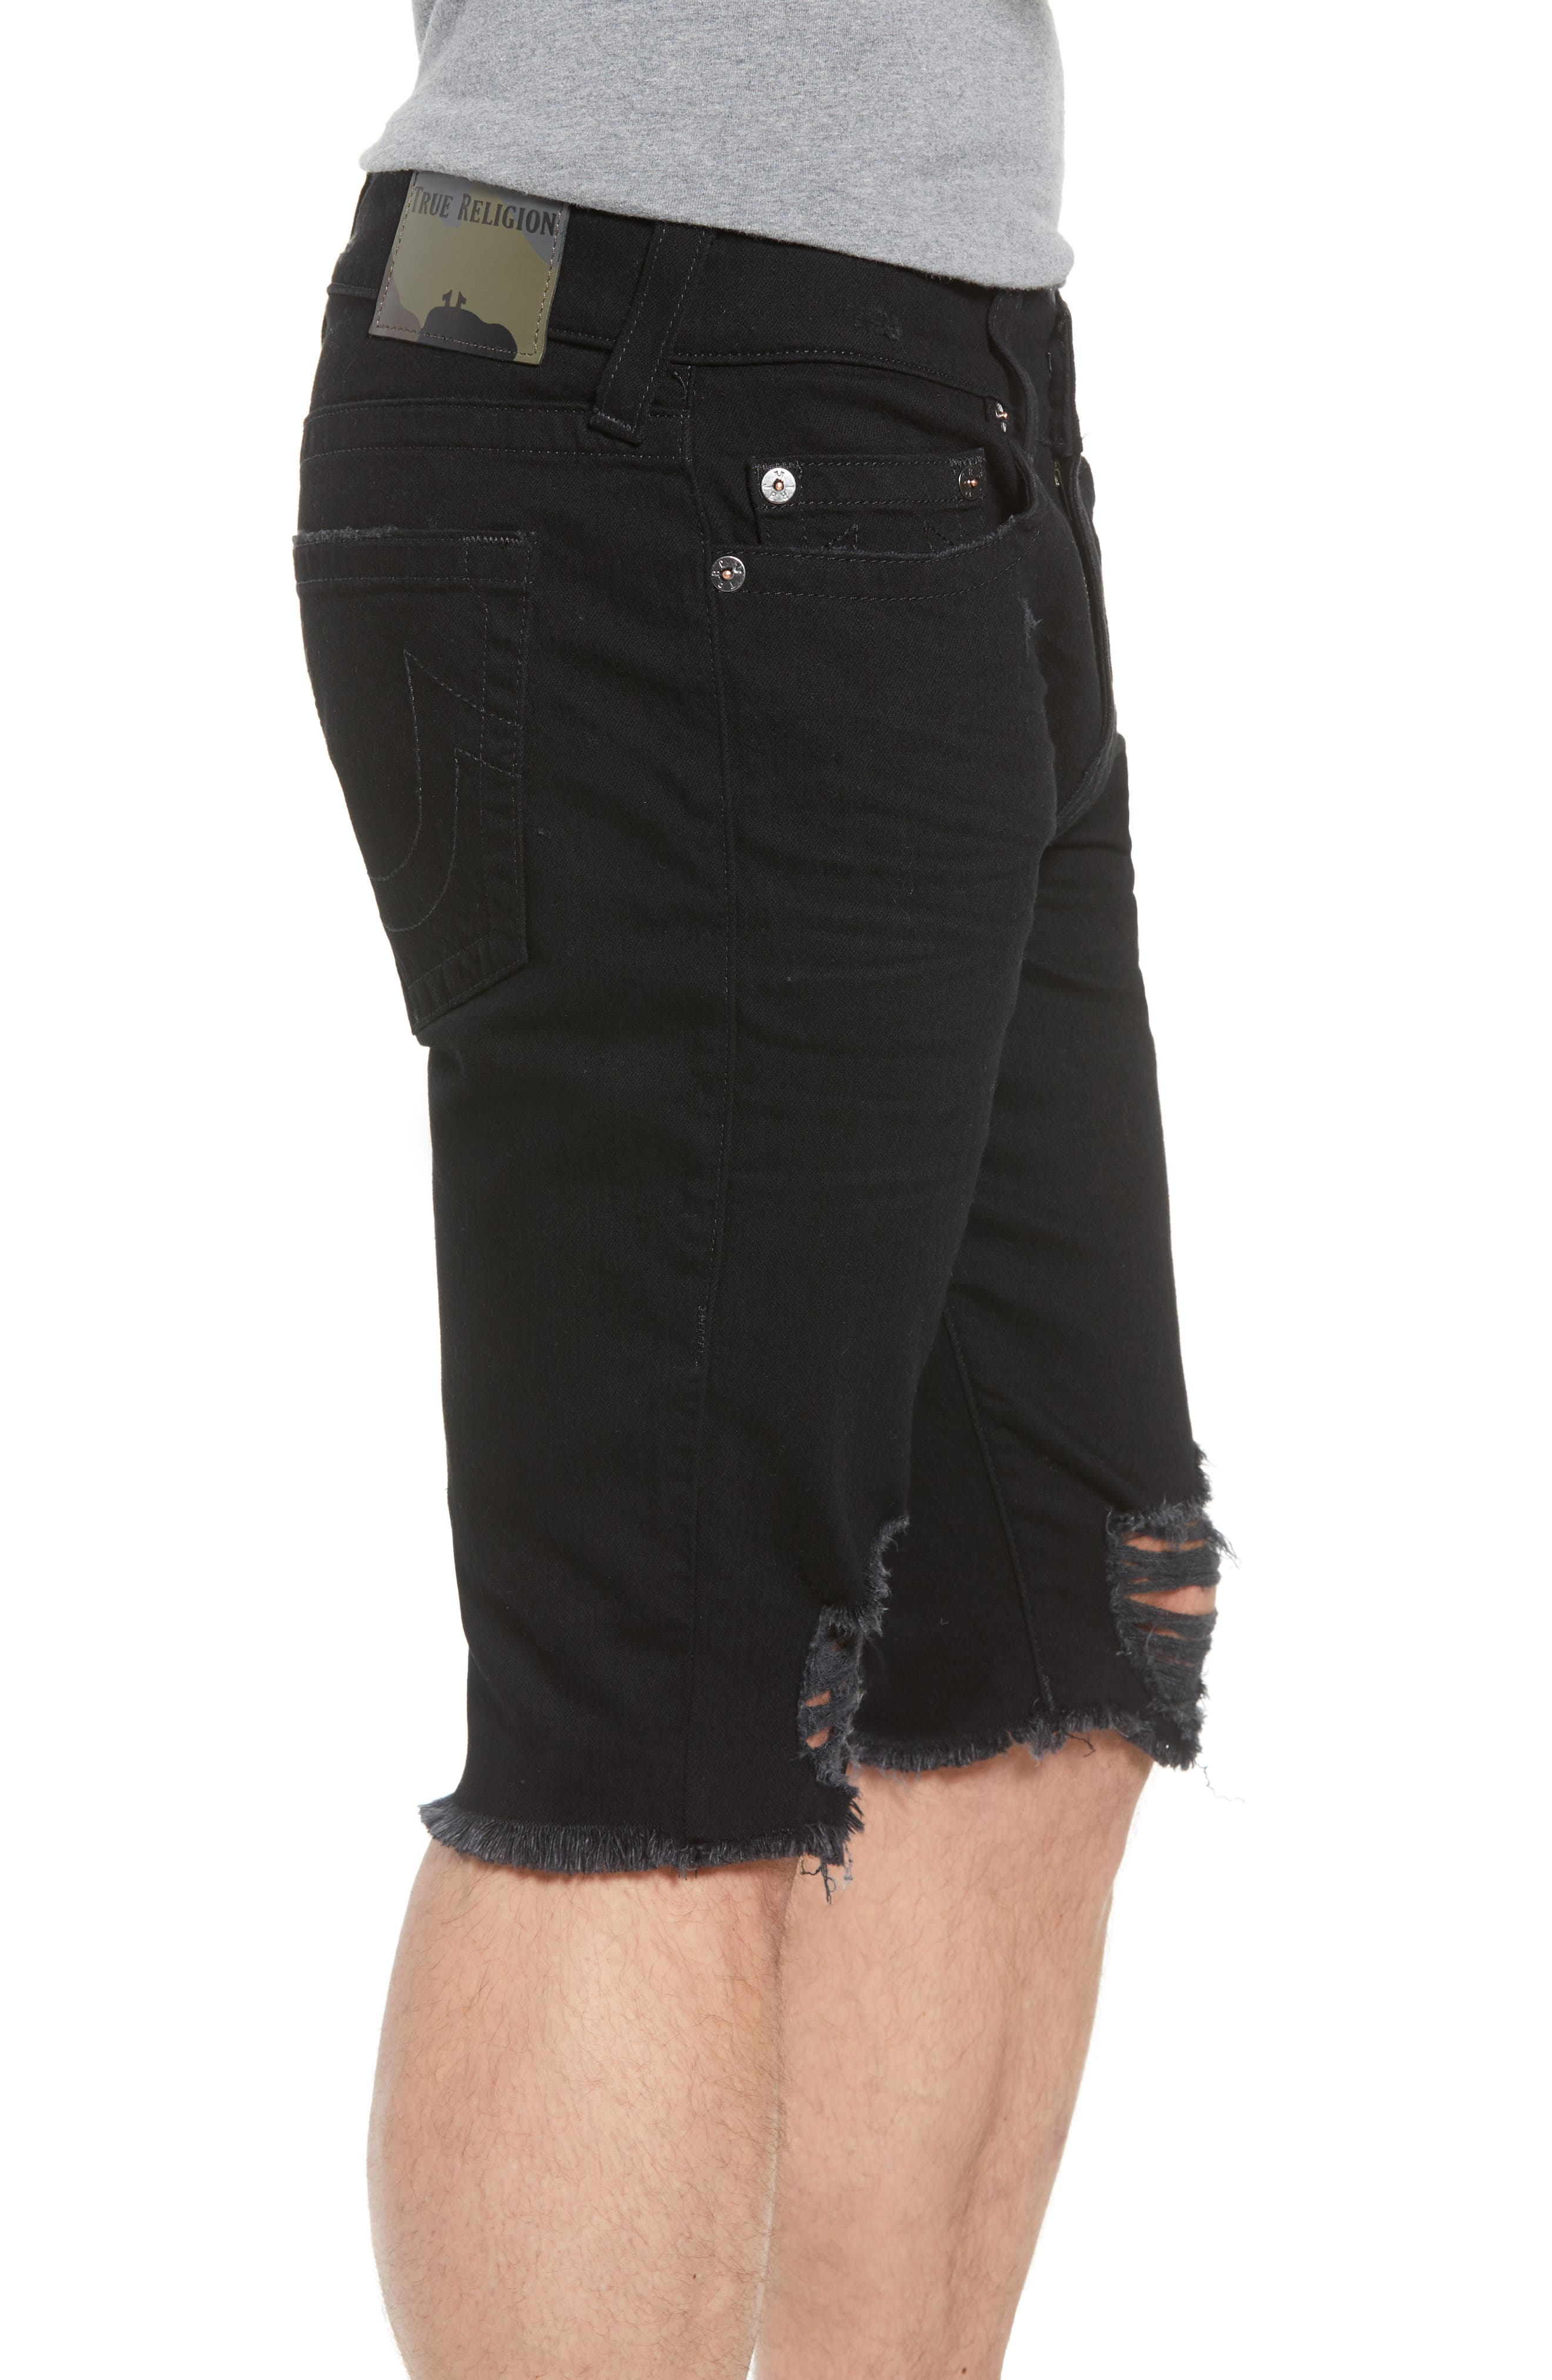 Ricky Relaxed Fit Shorts,                             Alternate thumbnail 3, color,                             Chalkboard